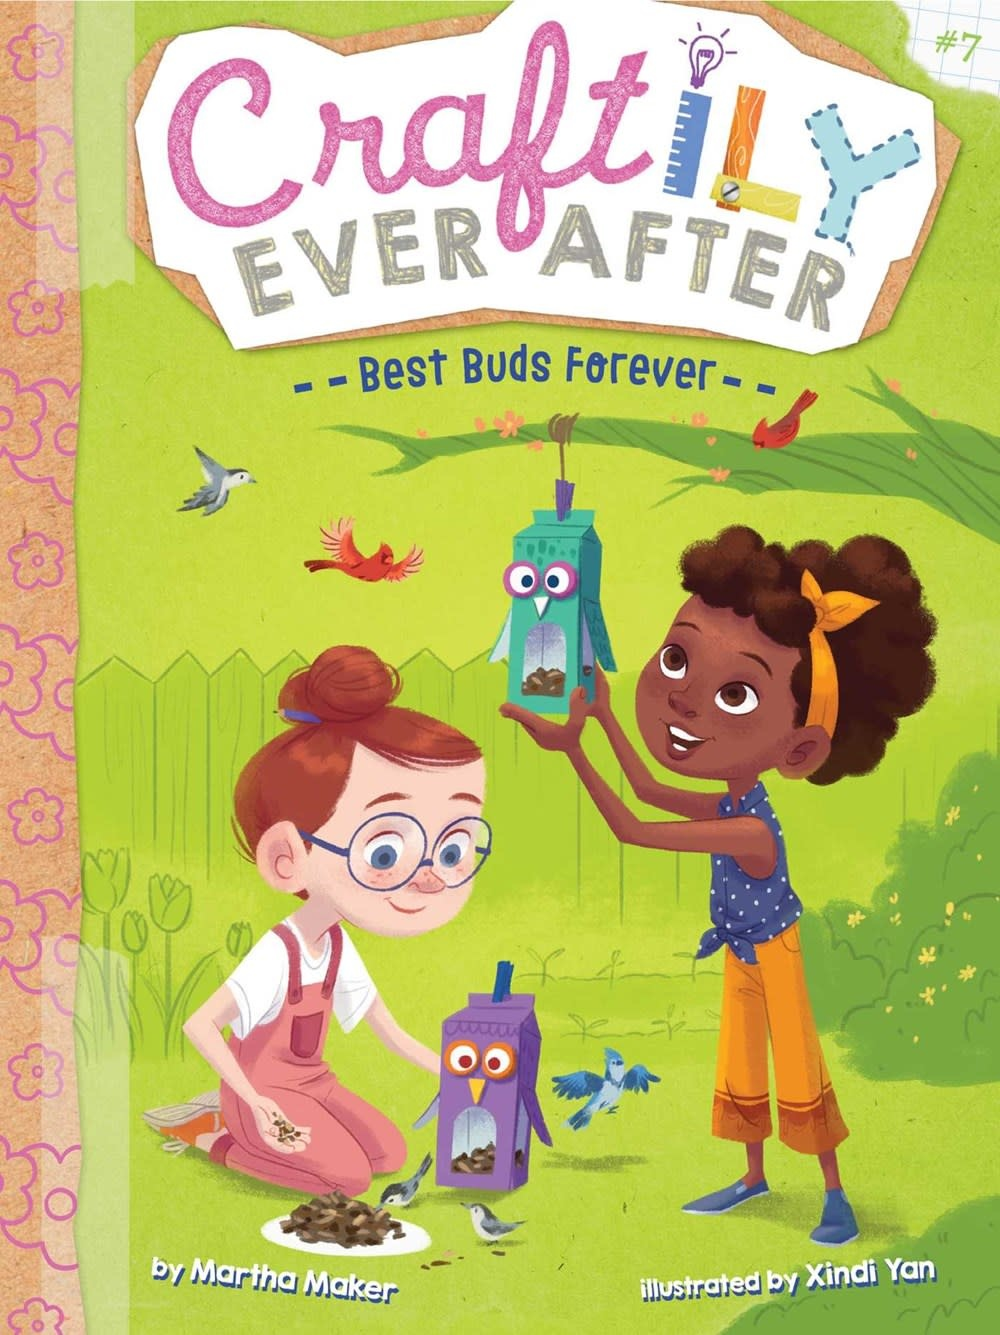 Little Simon Craftily Ever After: Best Buds Forever